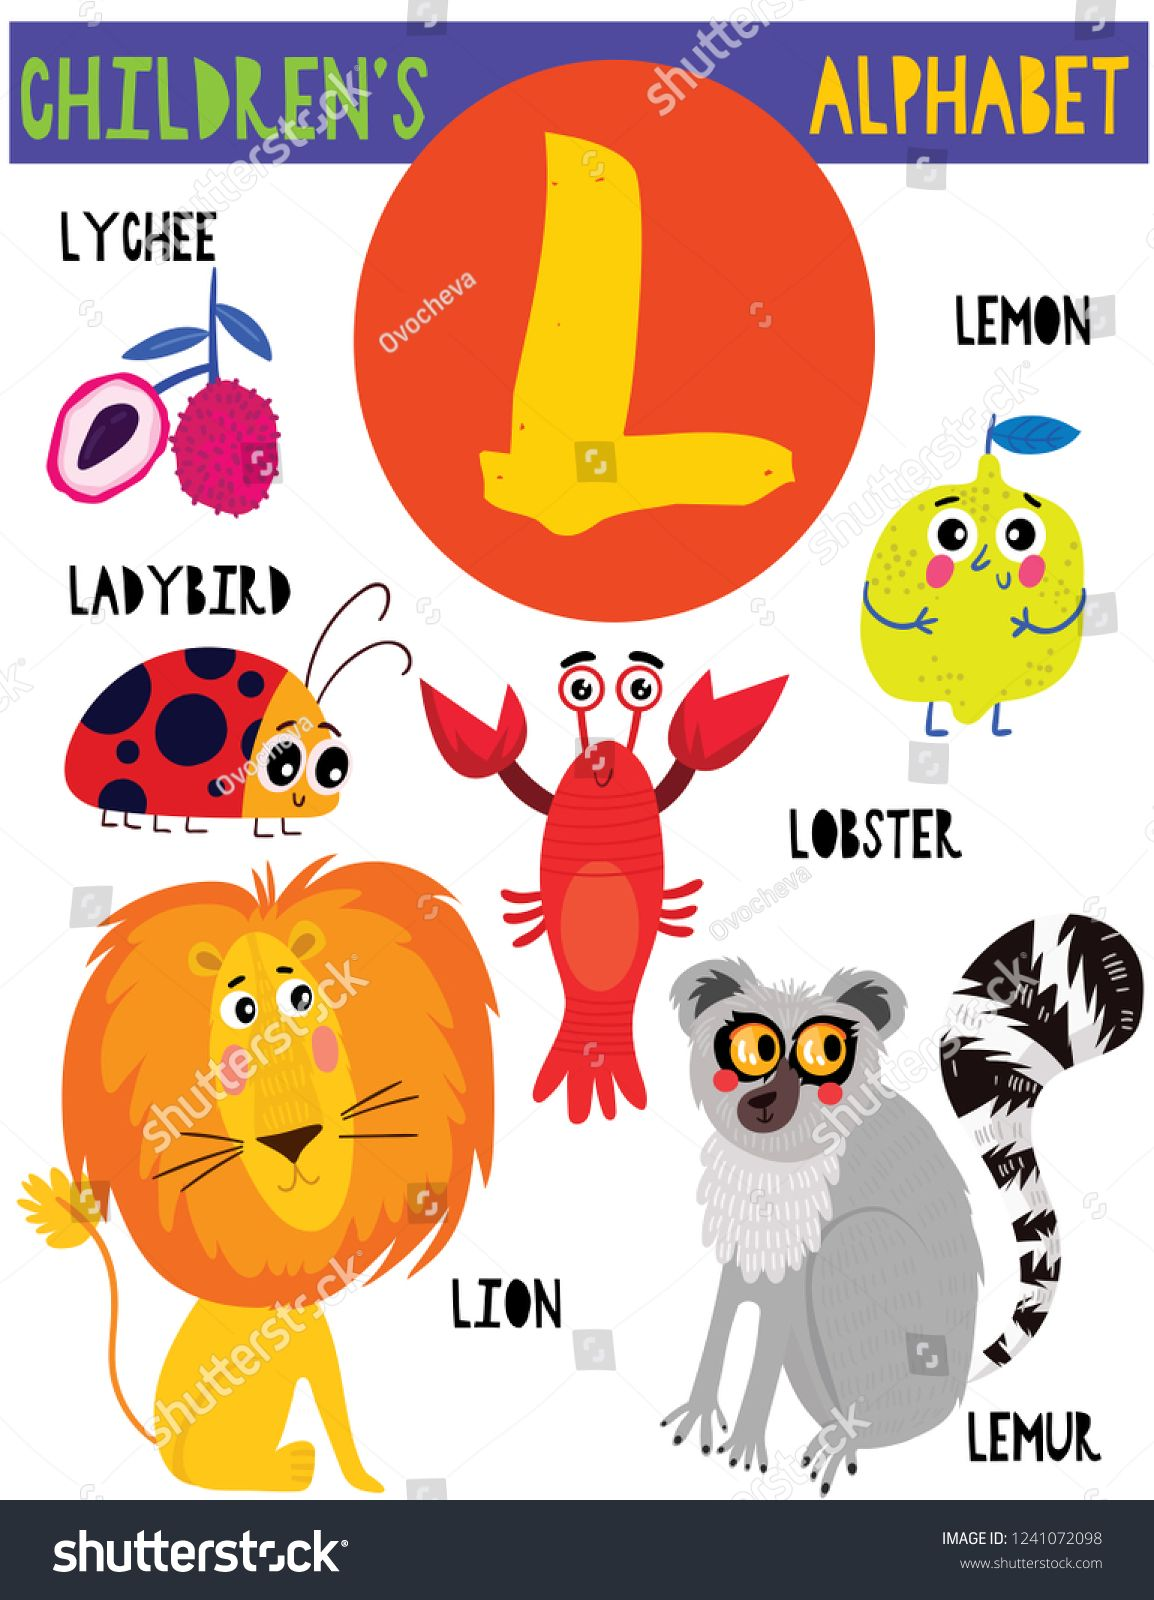 Letter L Cute Children S Alphabet With Adorable Animals And Other